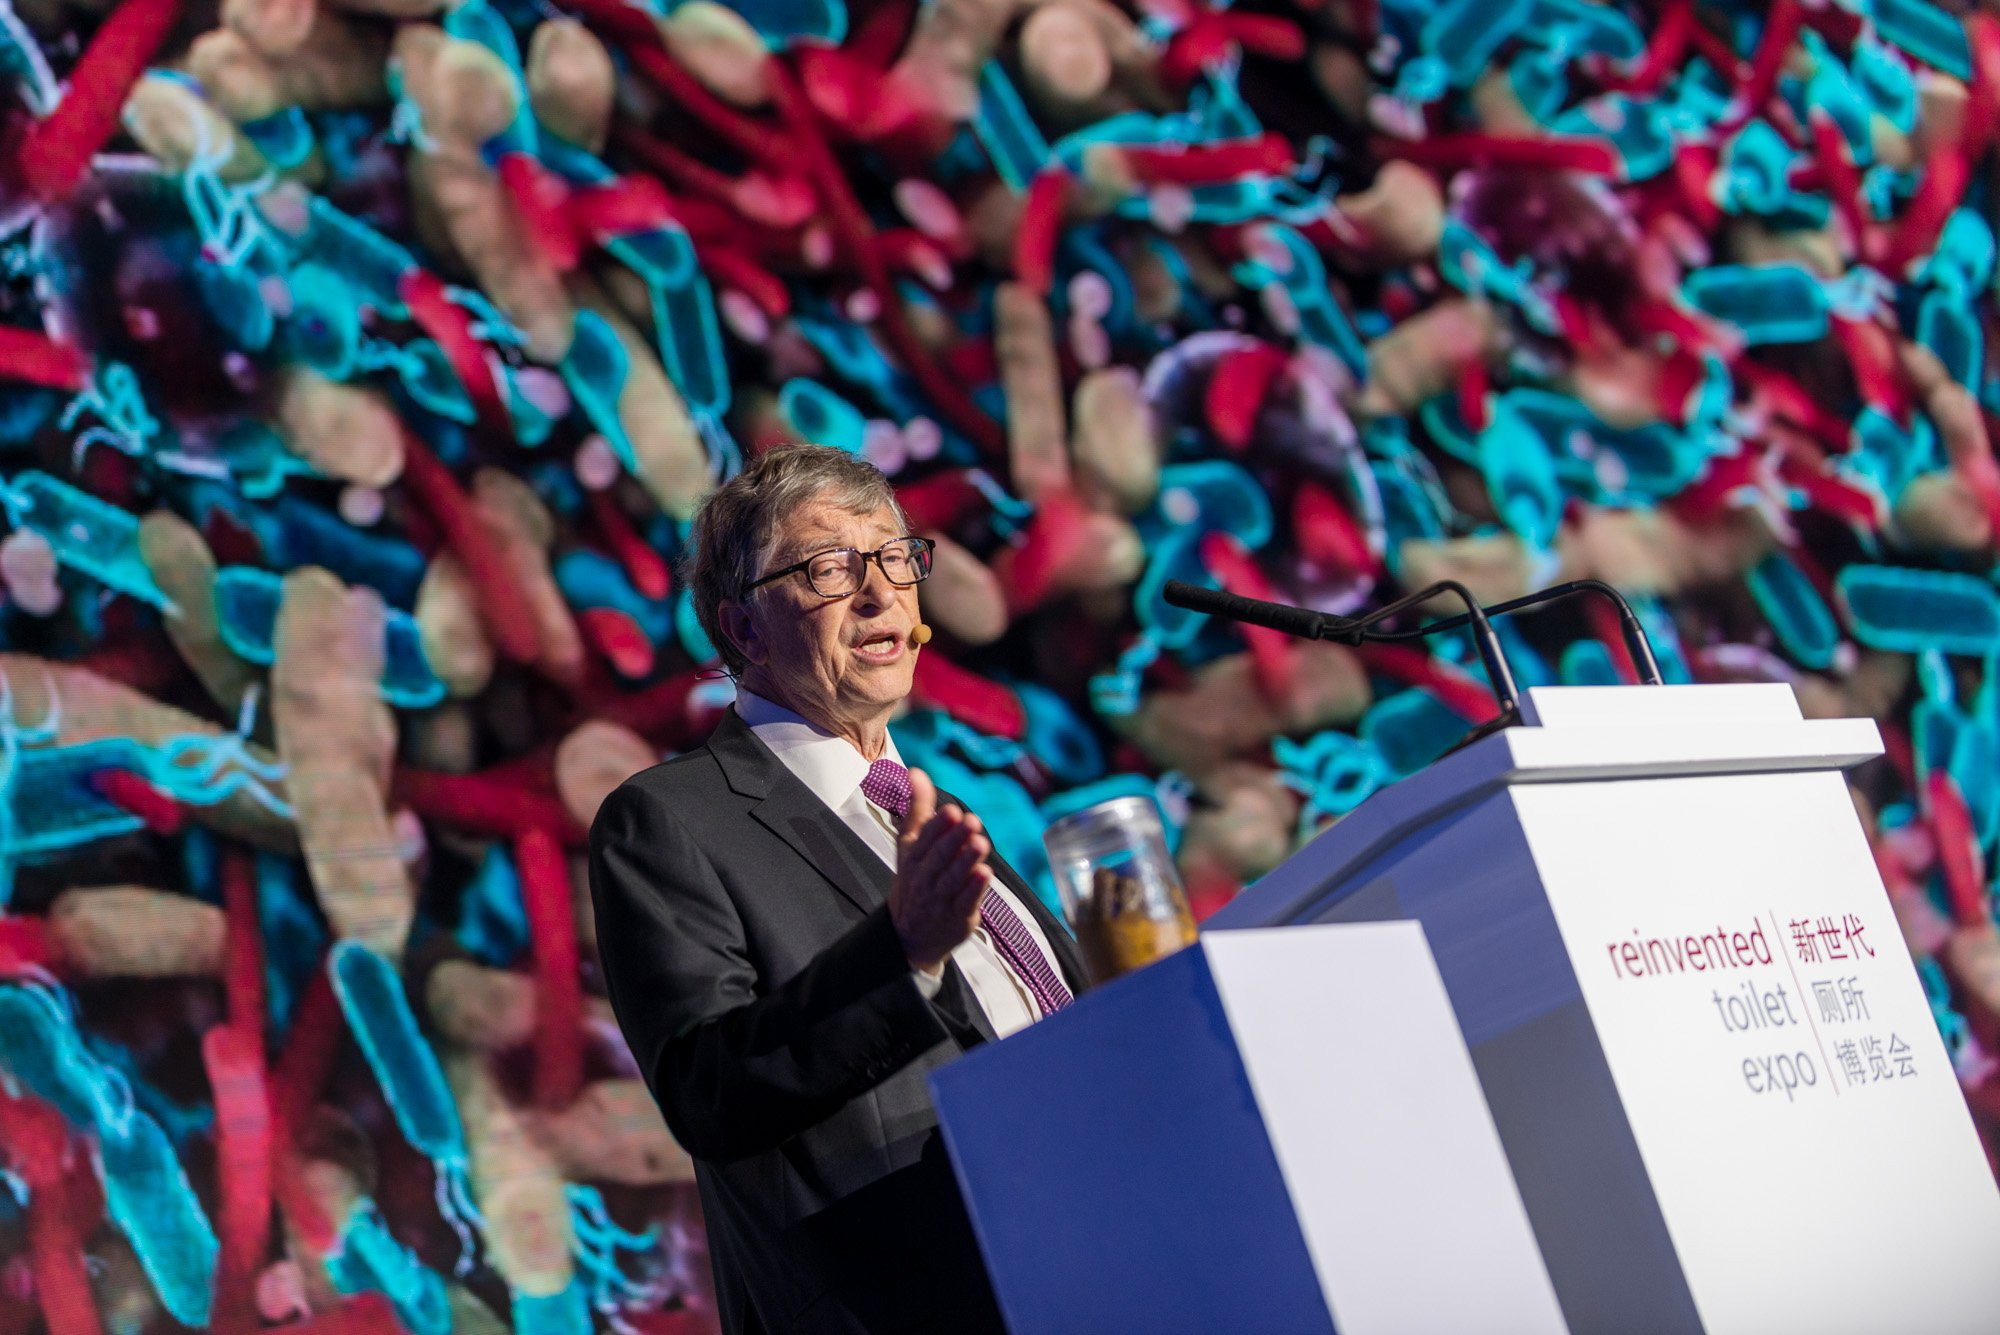 Bill Gates at Reinvented Toilet Expo, Beijing, China, Nov. 6 2018